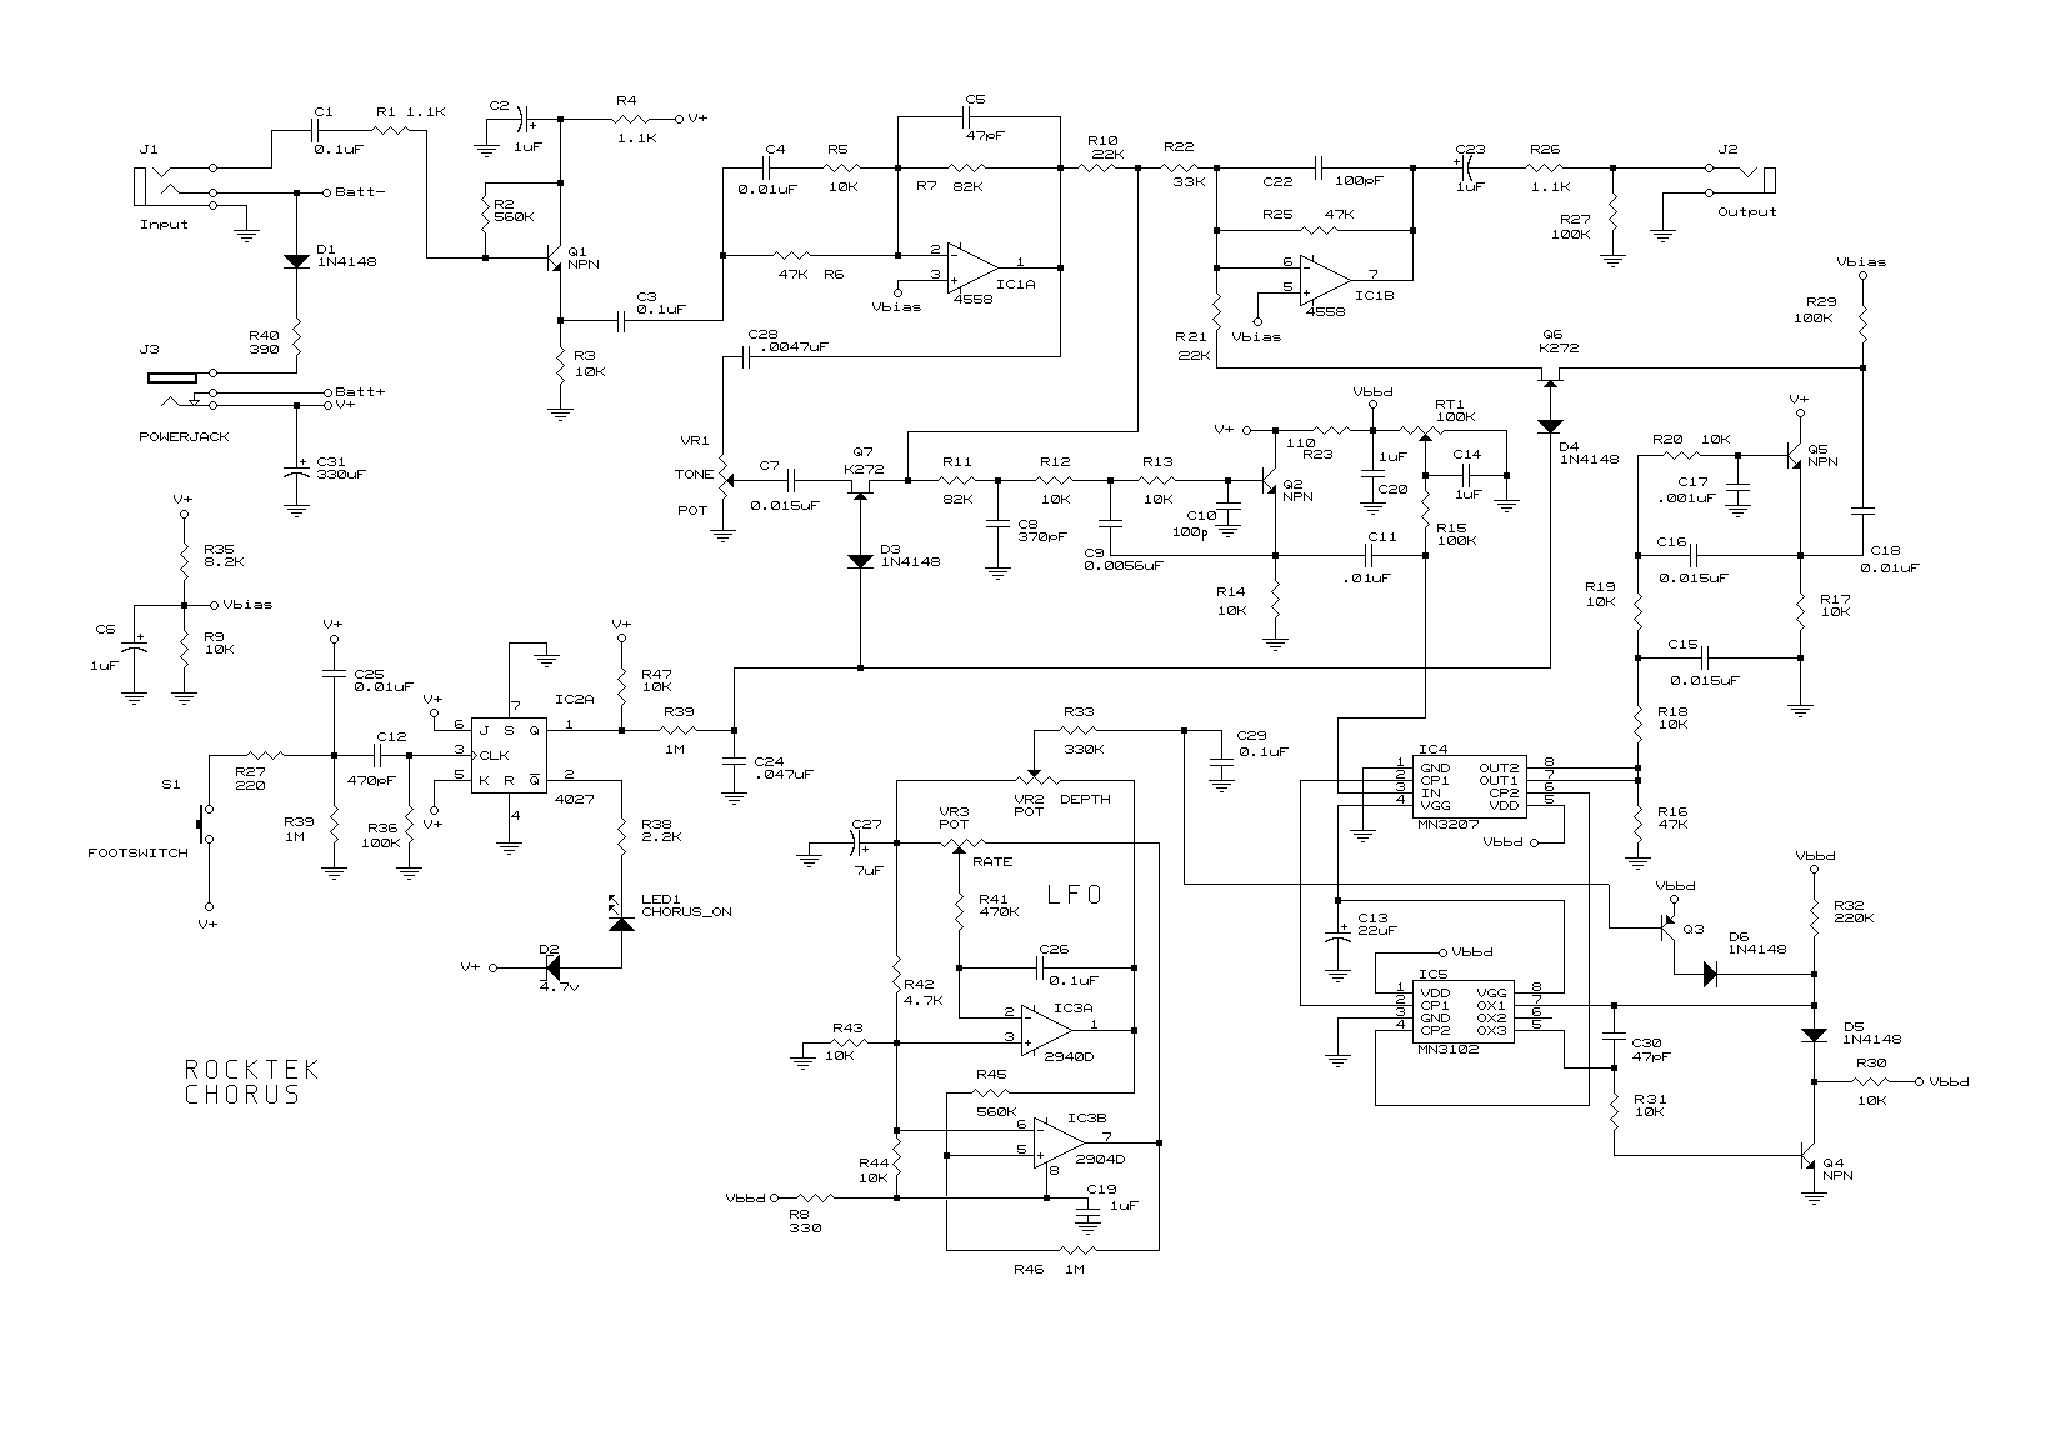 Rocktek Chorus Schematic - DIY Enthusiasts Wiring Diagrams • on fender super reverb schematic, fender ultimate chorus specs, fender princeton 650 schematic, fender power chorus schematic, fender princeton 112 schematic, roland jazz chorus schematic, fender frontman 15g schematic, fender amp manuals, fender pro reverb schematic, fender deluxe 85 schematic, fender frontman 25r schematic, fender blues deluxe schematic, fender the twin schematic, princeton reverb schematic, fender princeton 65 schematic, fender hot rod deville schematic, fender amp schematics, fender m 80 manual, fender frontman 212r schematic, fender champ schematic aa764,